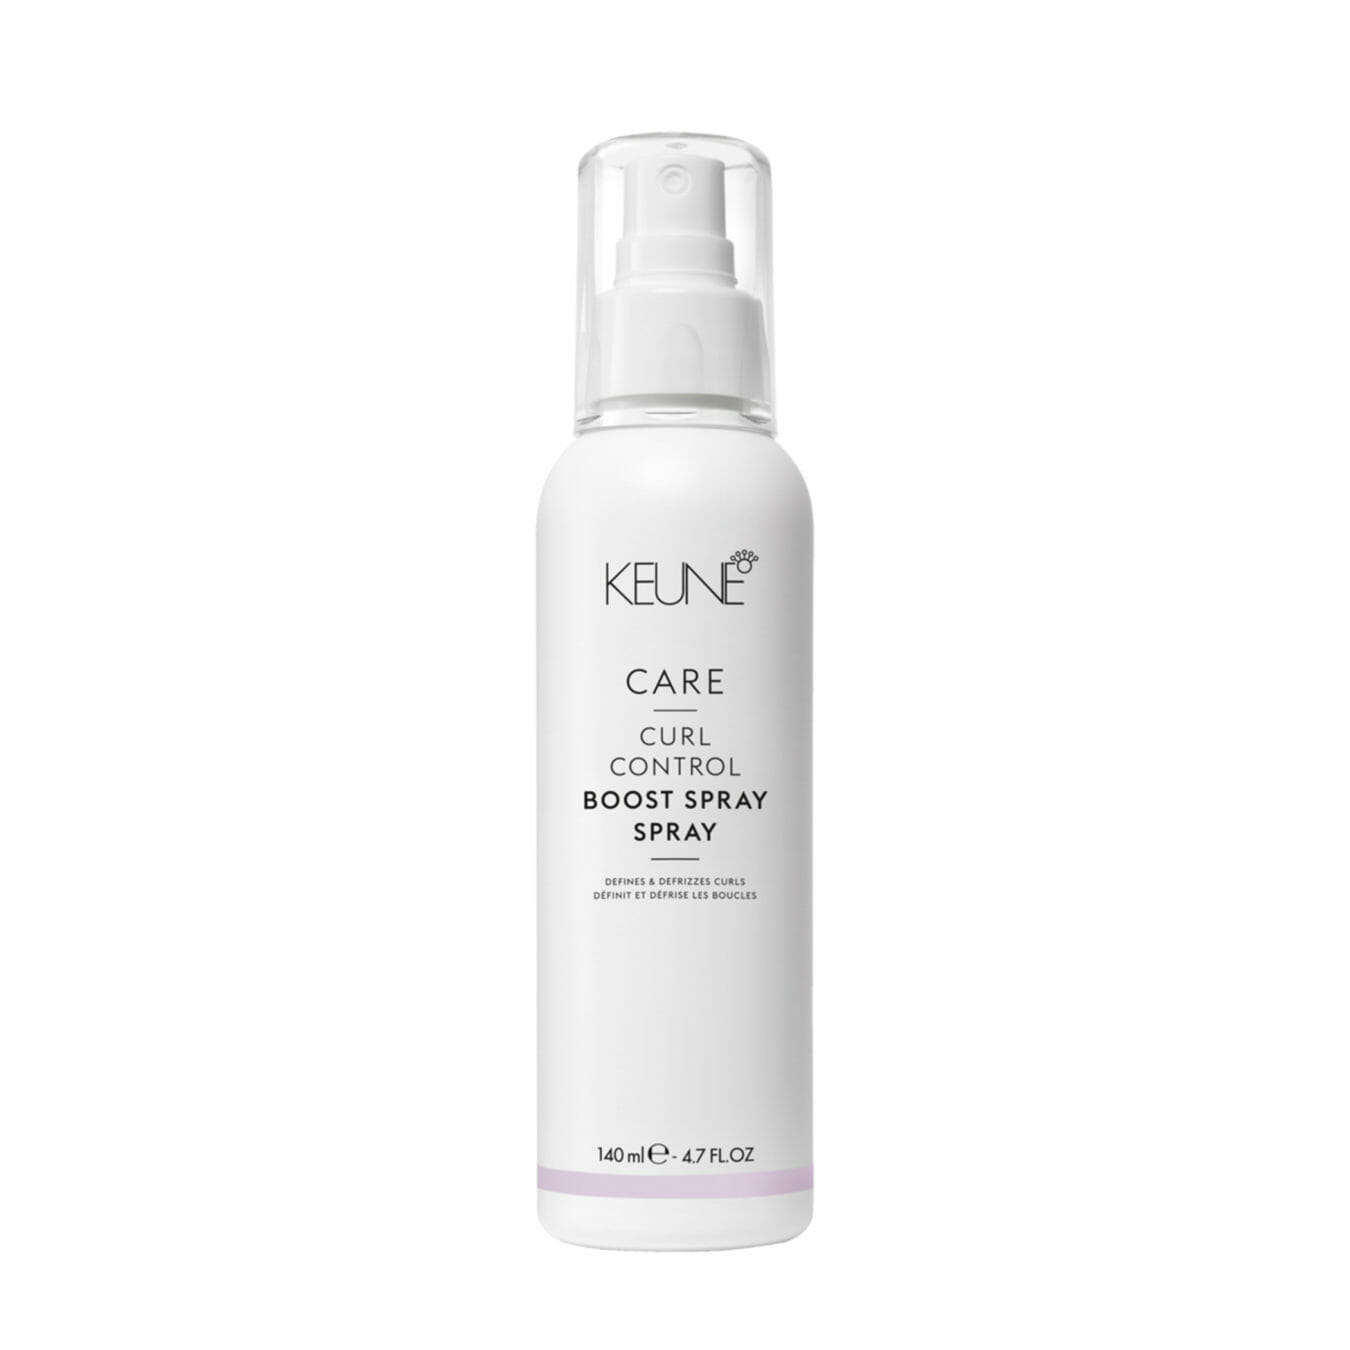 Koop Keune Care Curl Control Boost Spray 140ml